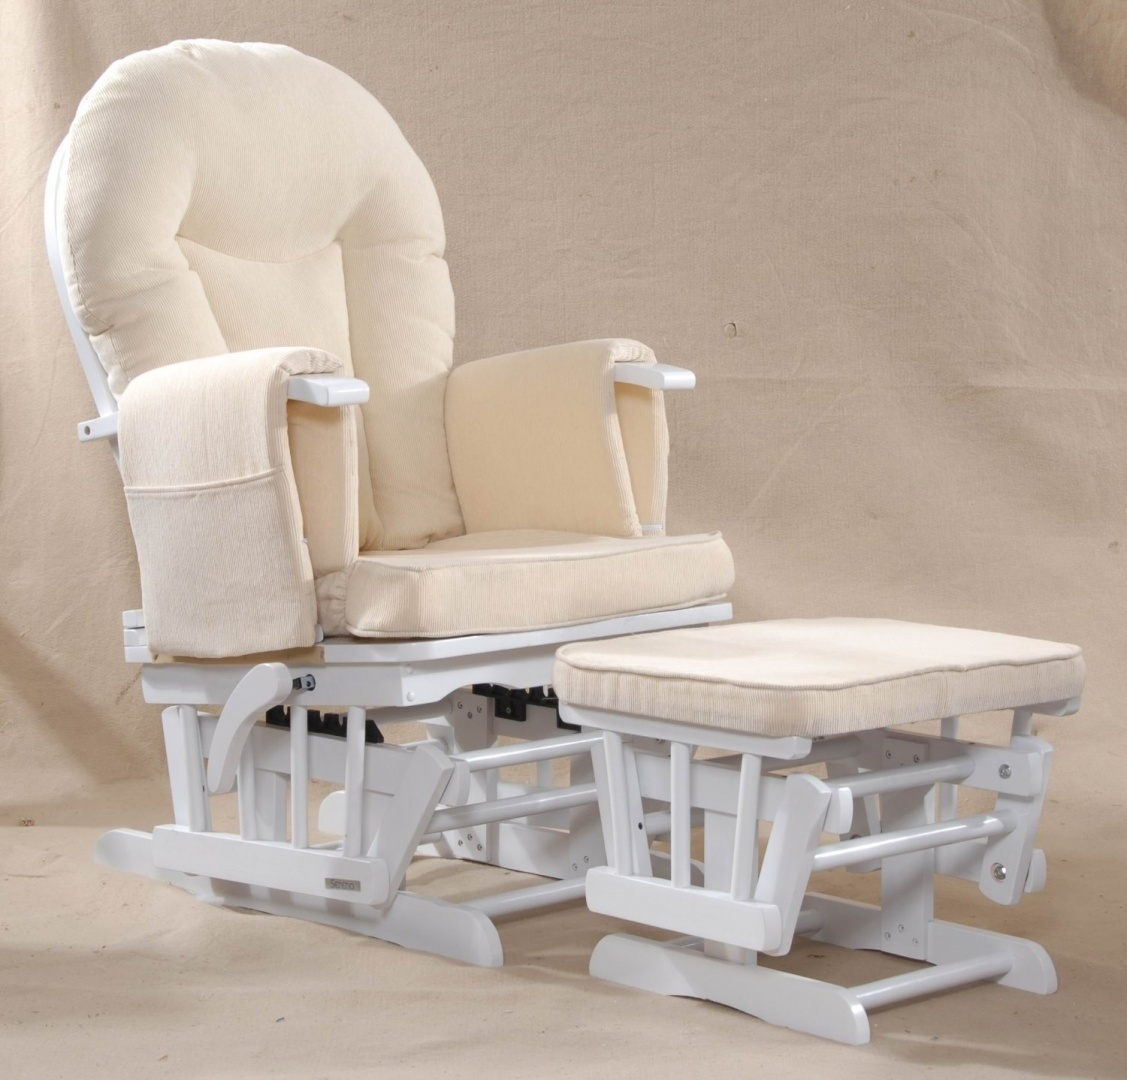 Baby Nursing Chair Sereno White Nursing Glider Maternity Rocking Chair With Glide Lock And Footstool